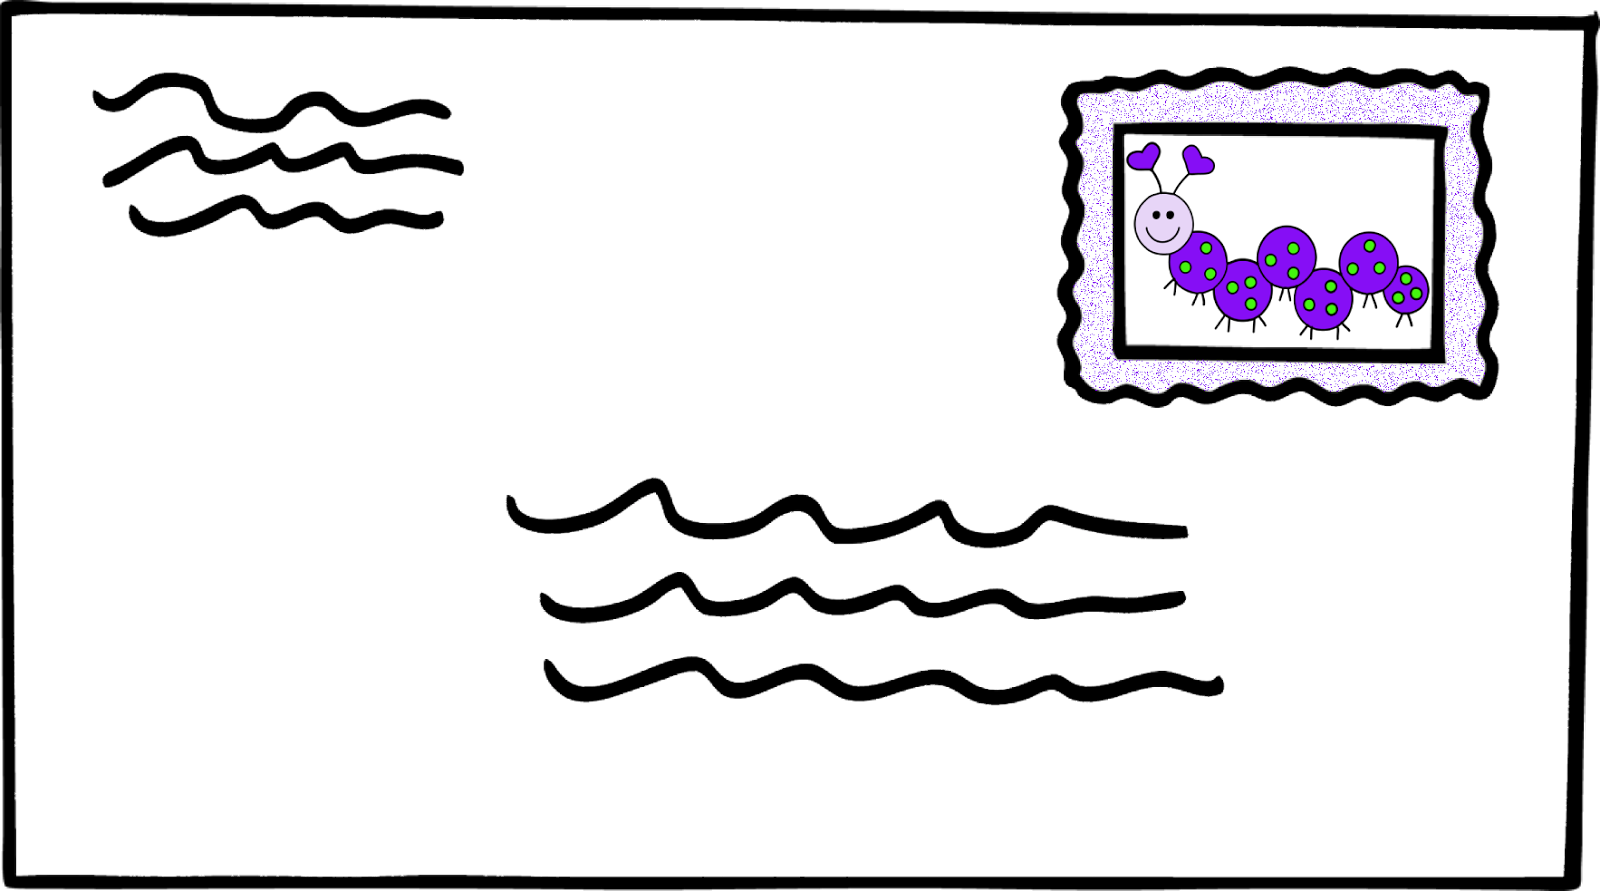 Free stamped cliparts download. Mail clipart addressed envelope